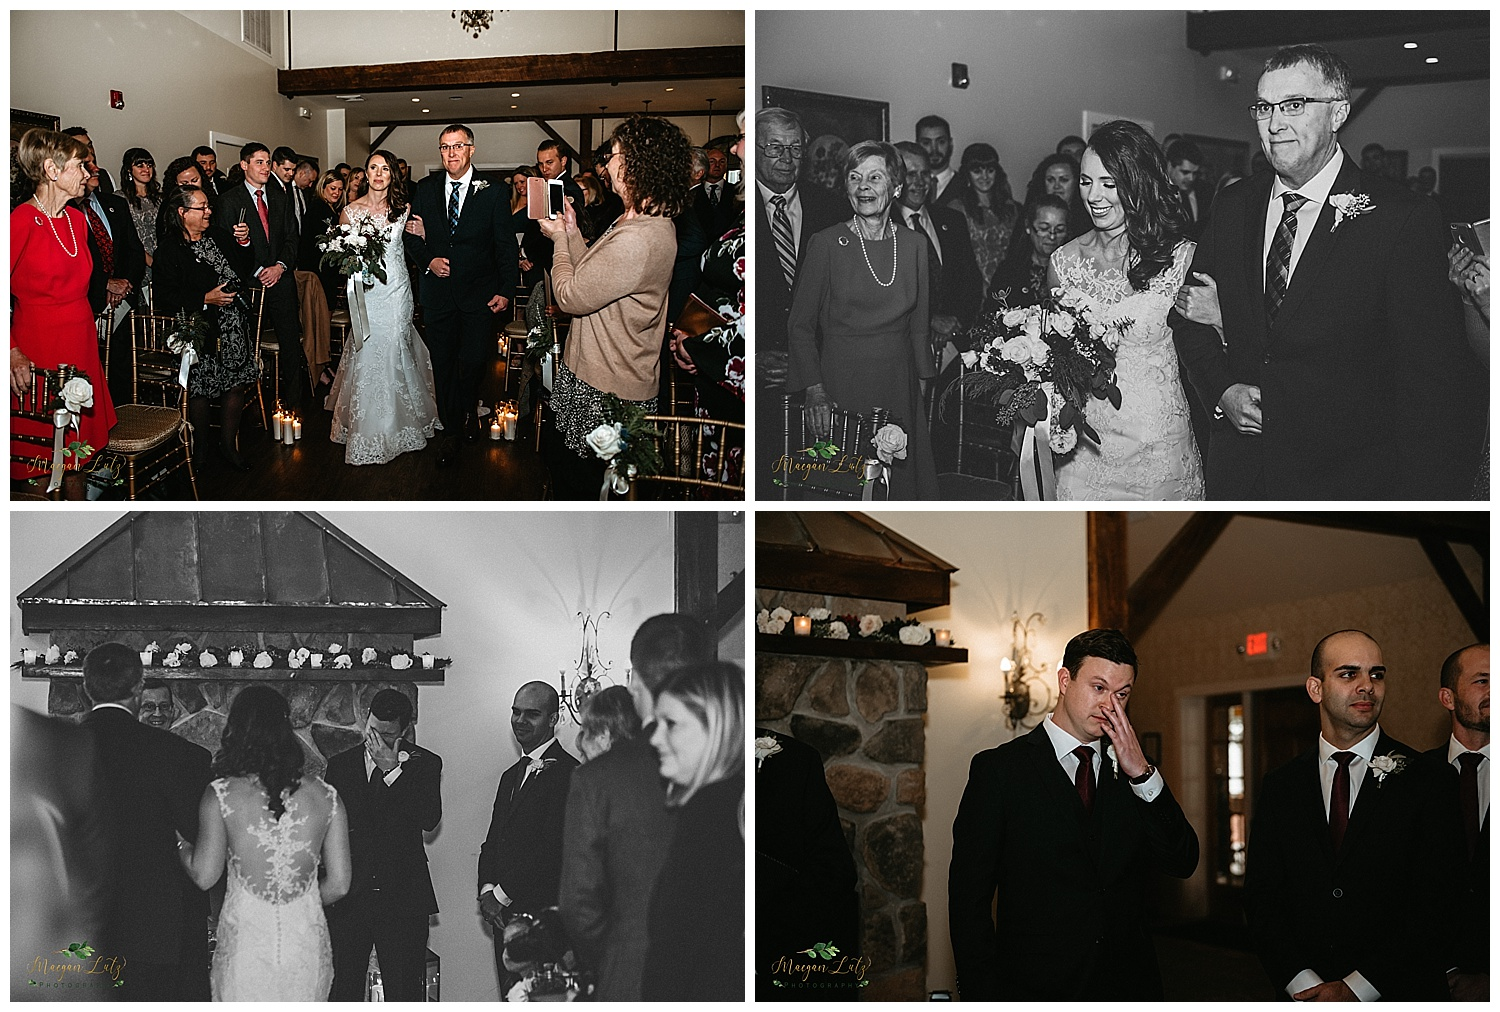 NEPA-wedding-photographer-at-Farmstead-Golf-and-country-club-LaFayette-Township-New-Jersey_0047.jpg